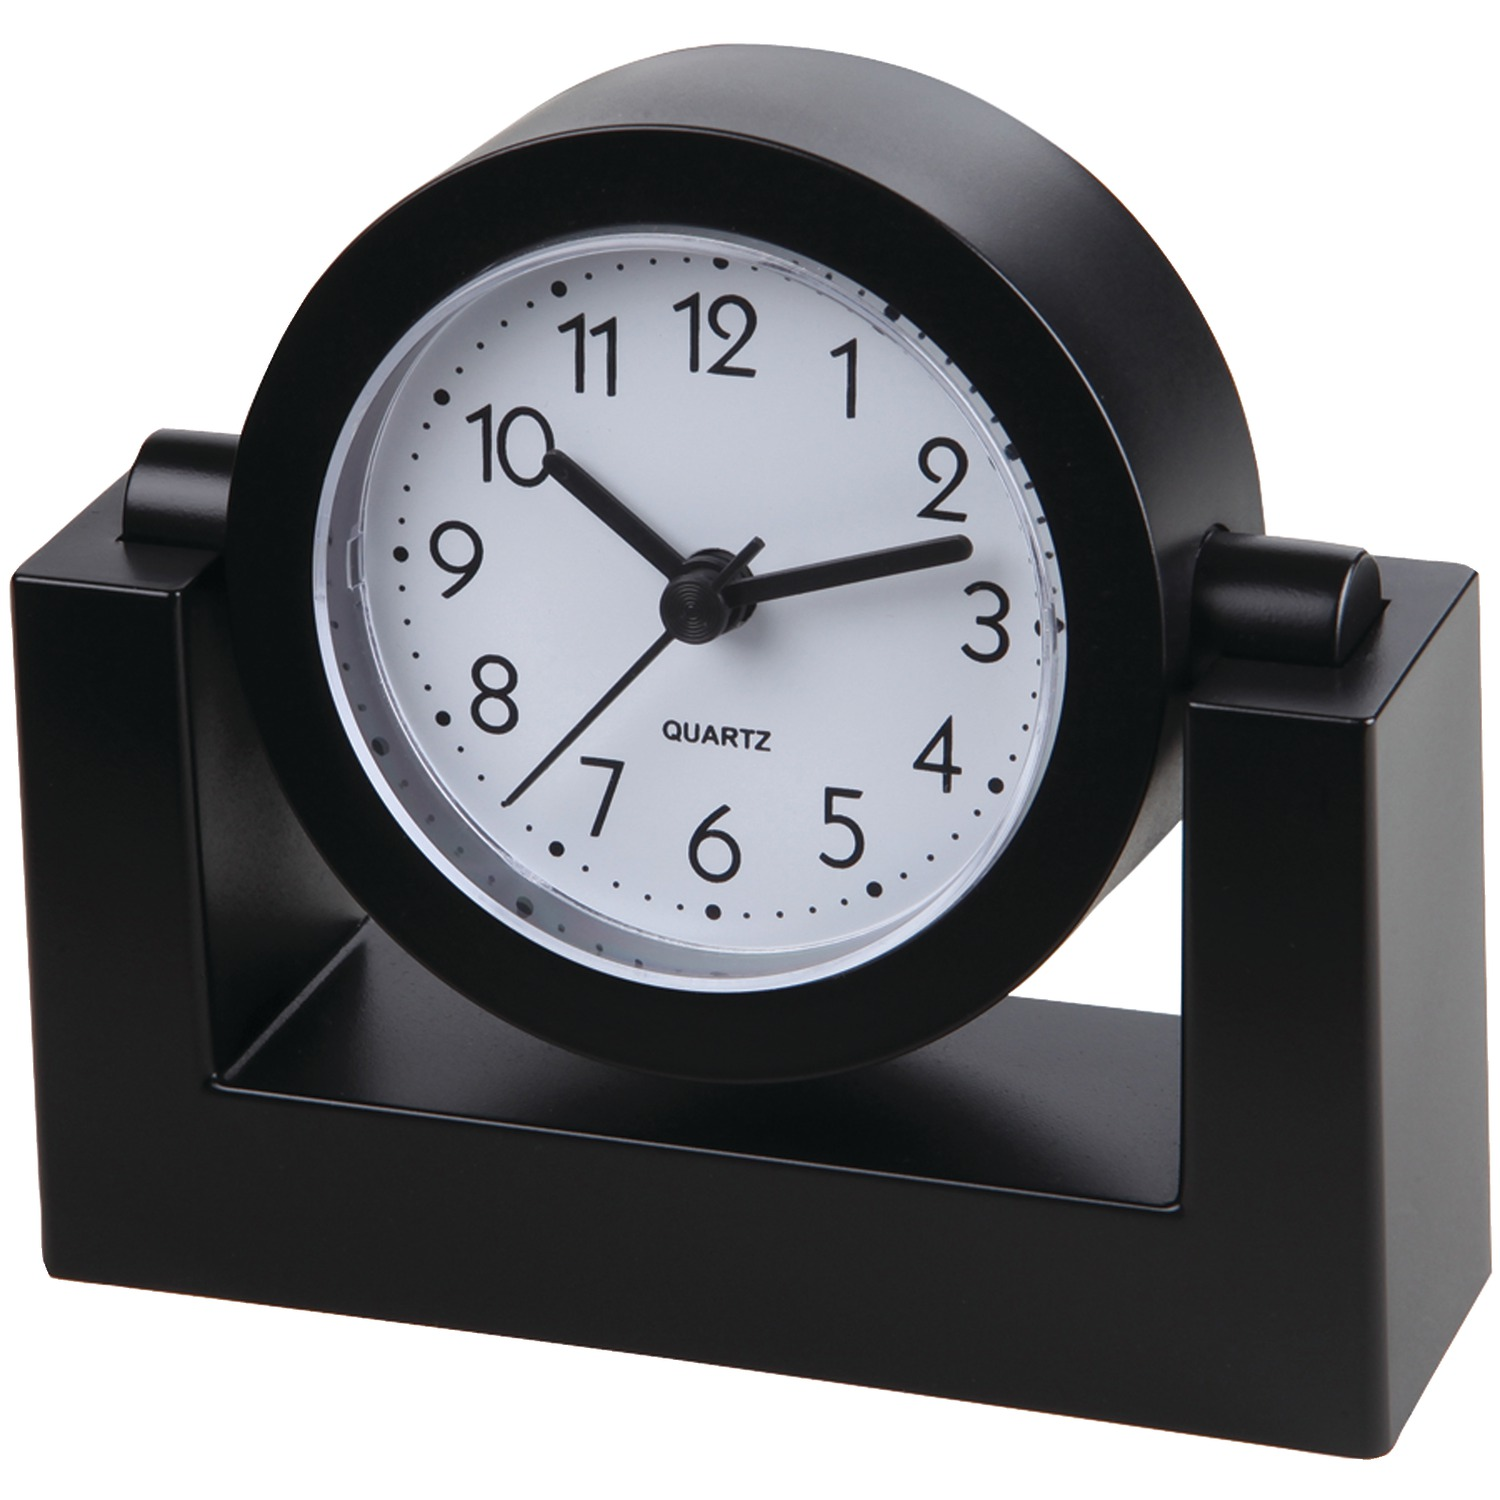 Timekeeper Tk6851 Timekeeper Desktop Swivel Clock With